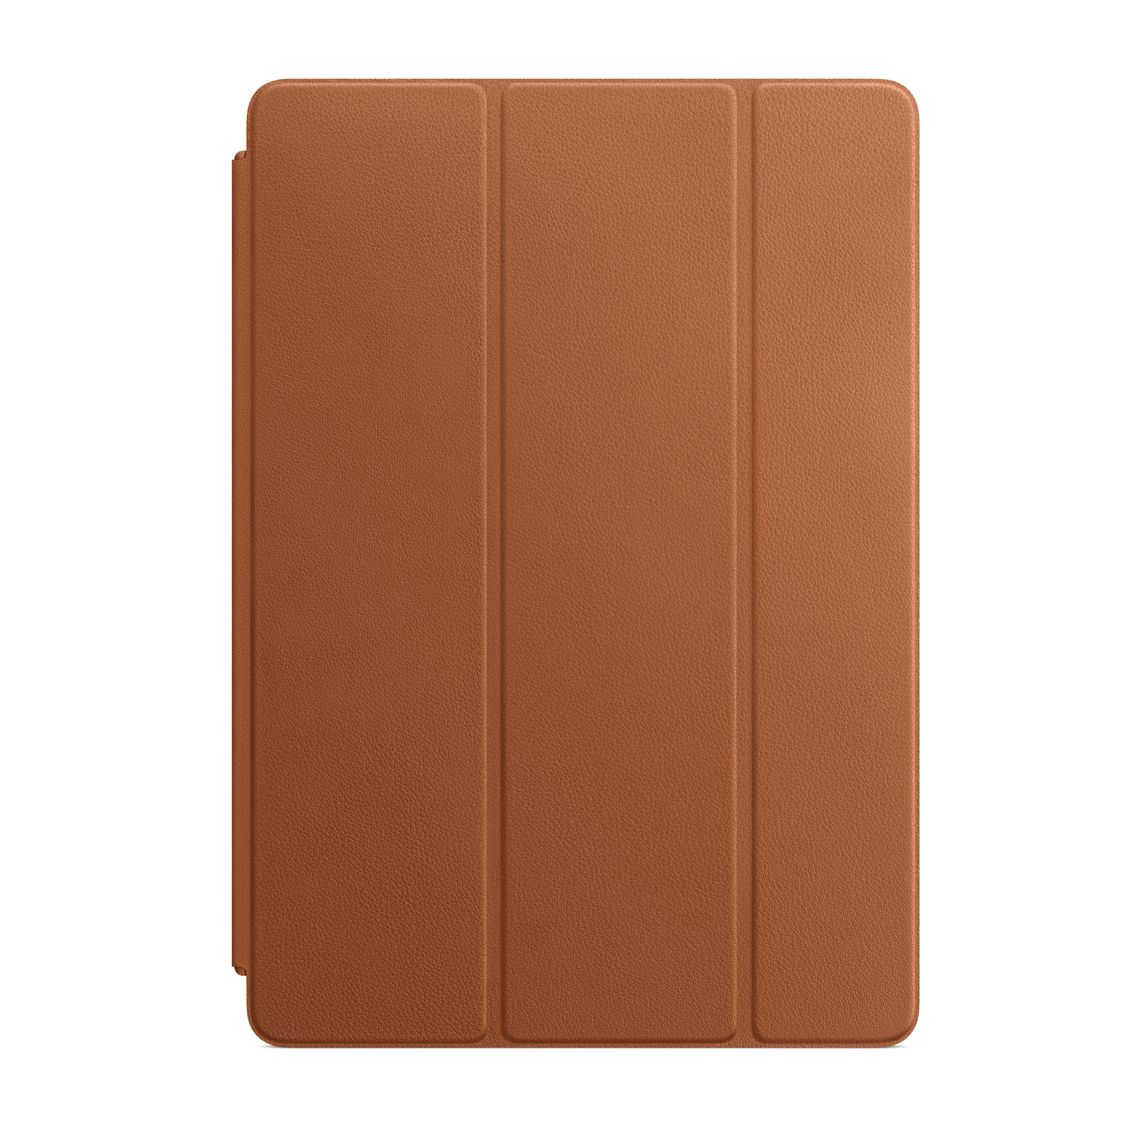 cheap for discount 2b7dd 55309 Leather Smart Cover for 10.5-inch iPad Air - Saddle Brown